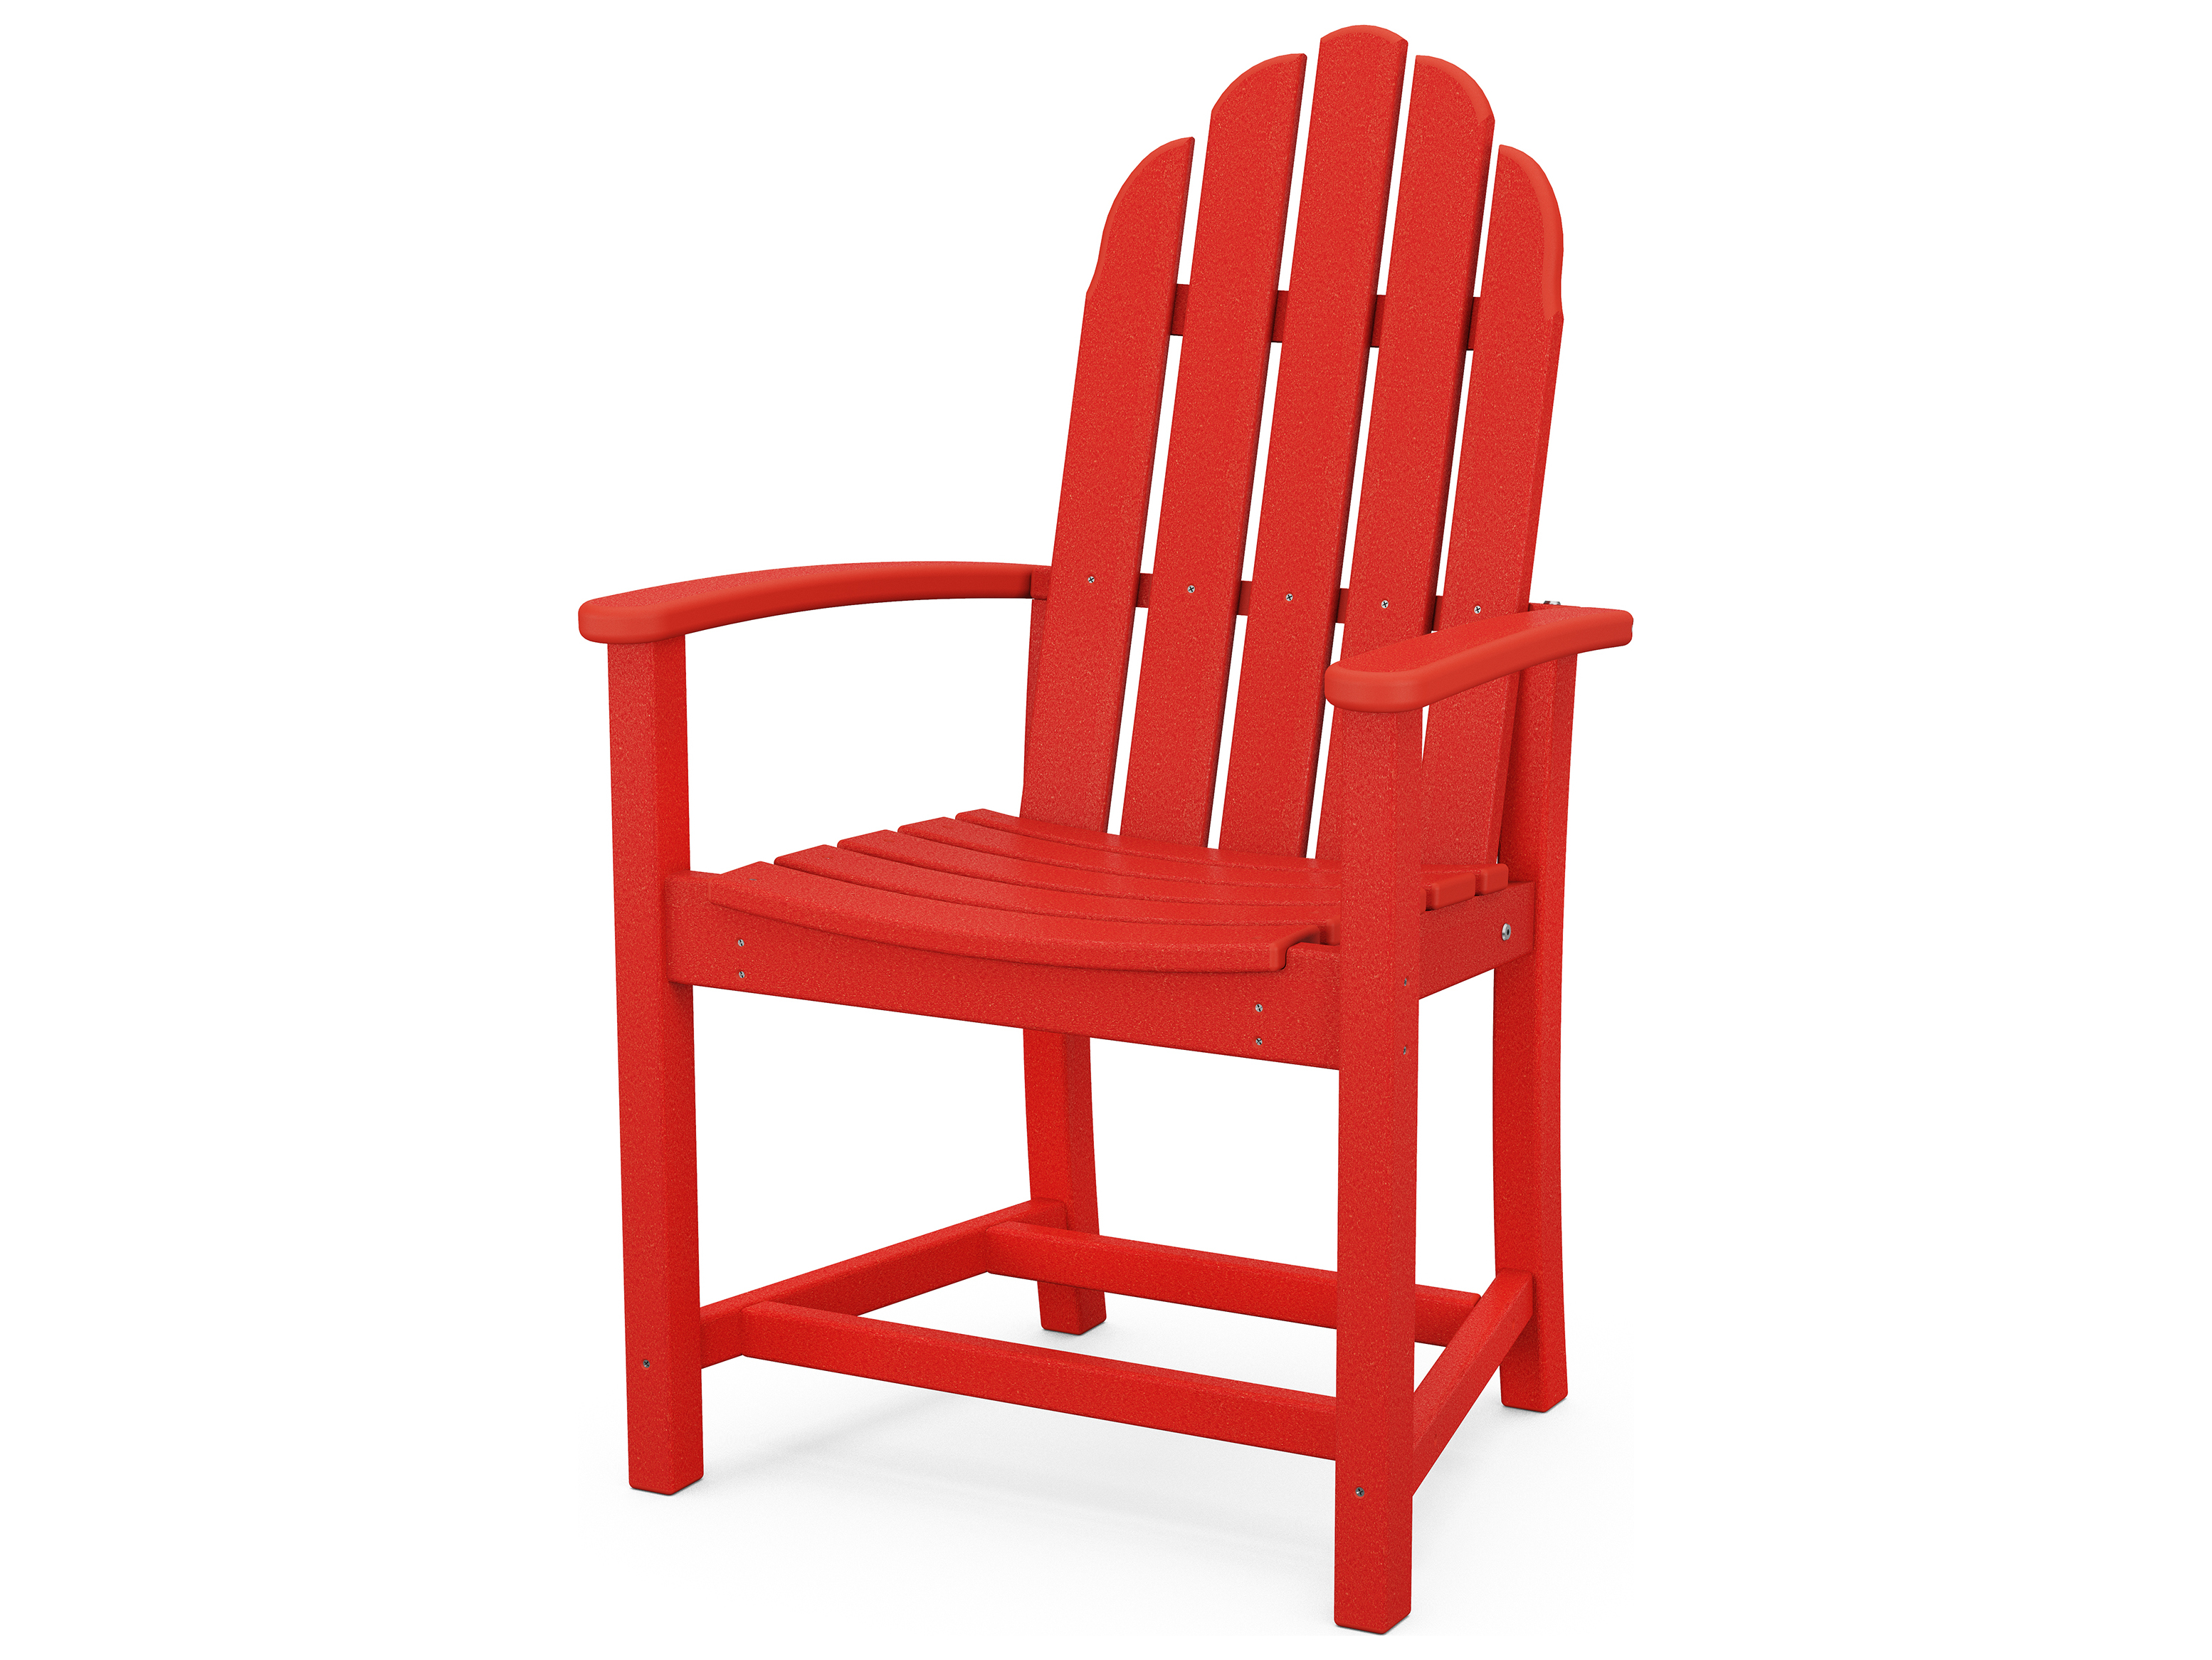 polywood classic adirondack chair bedroom cad block recycled plastic dining